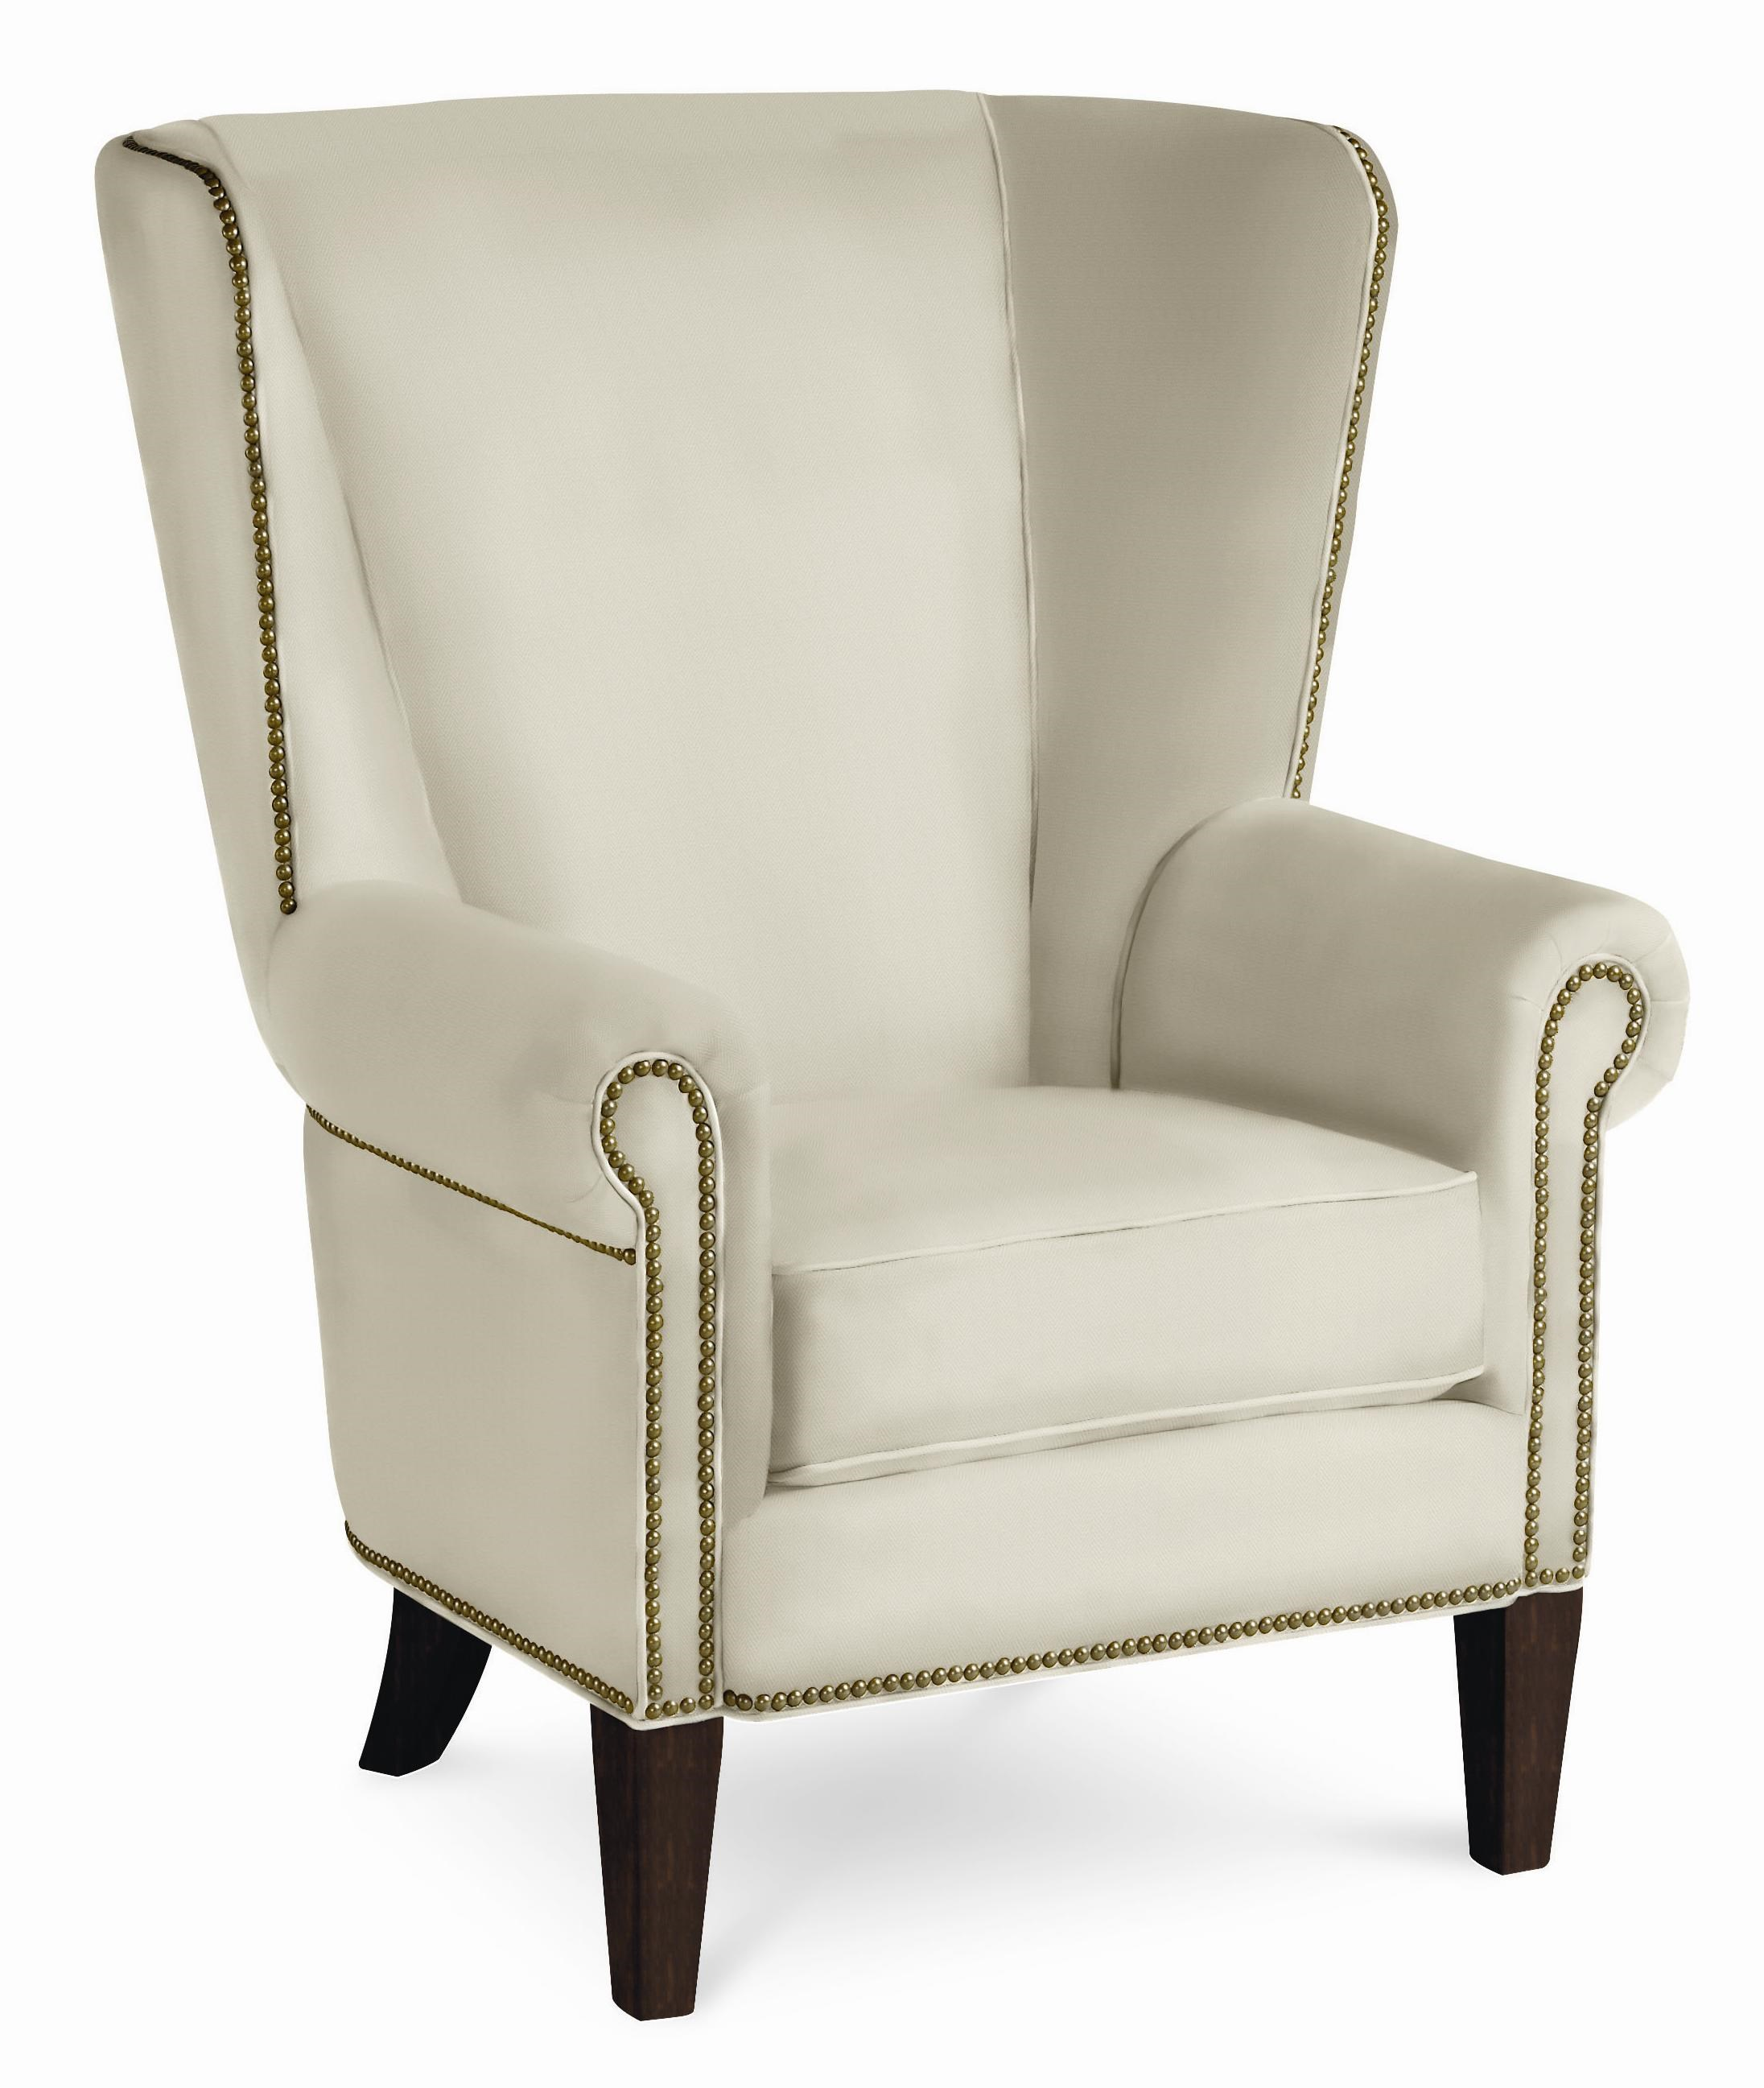 Charmant Thomasville® Upholstered AccentsMaynard Wing Chair ...